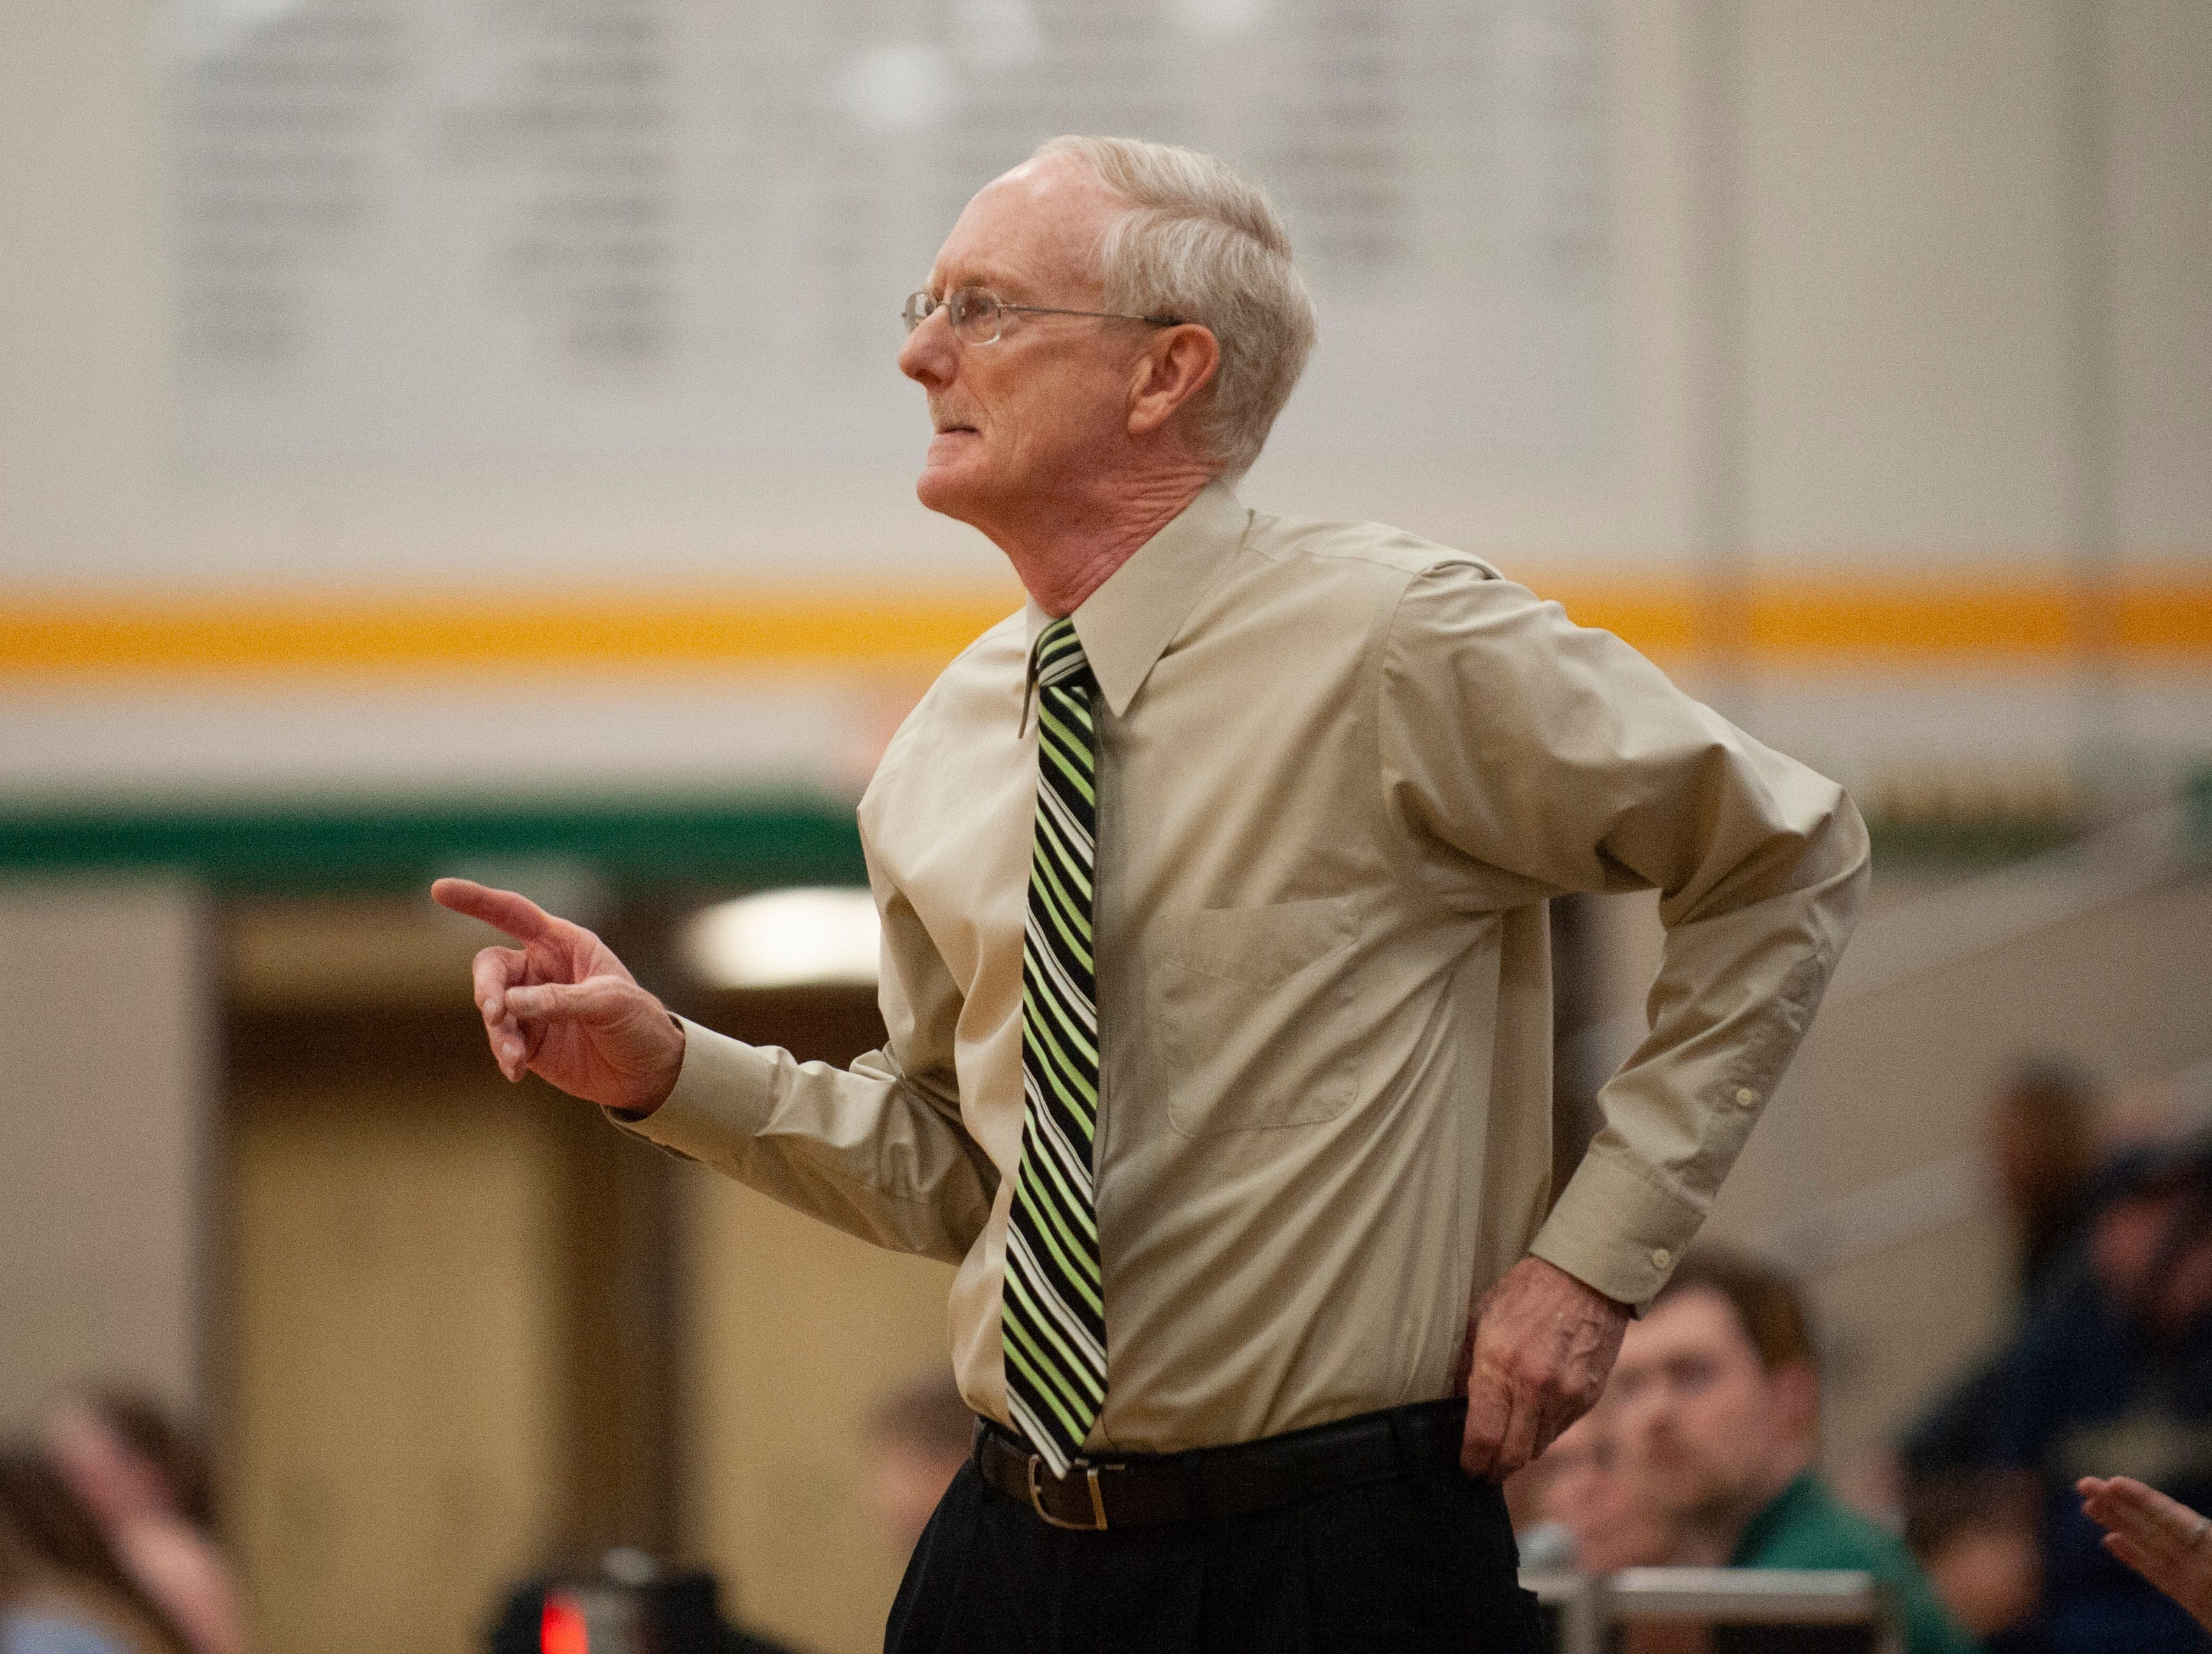 Grosse Pointe North head coach Gary Bennett directs the Norsemen in the first half.